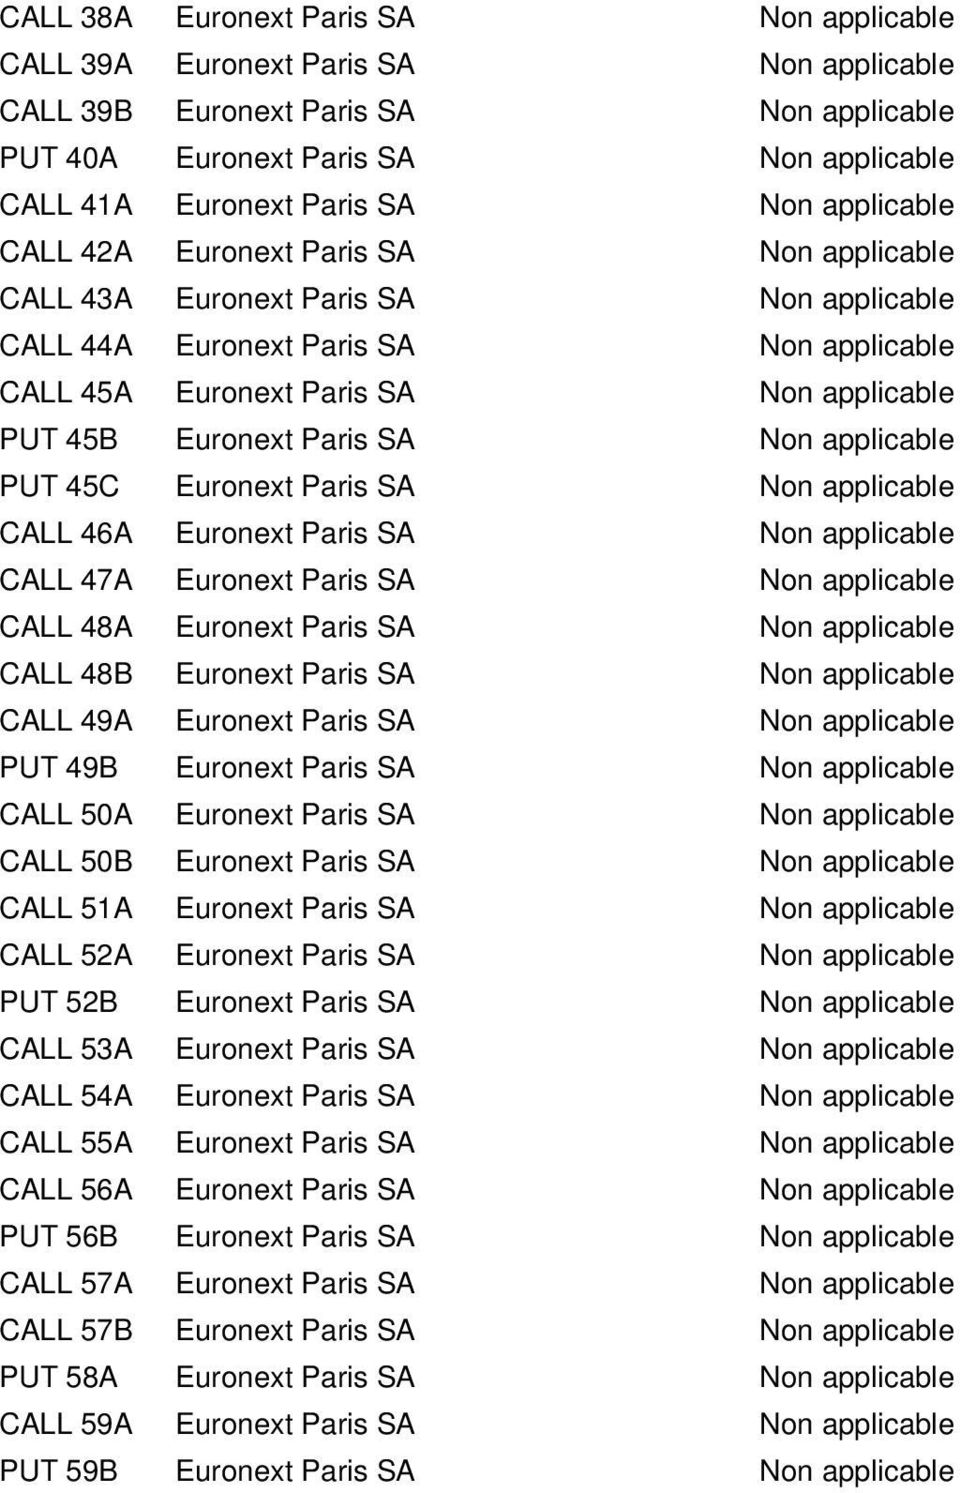 Paris SA Non applicable PUT 45C Euronext Paris SA Non applicable CALL 46A Euronext Paris SA Non applicable CALL 47A Euronext Paris SA Non applicable CALL 48A Euronext Paris SA Non applicable CALL 48B